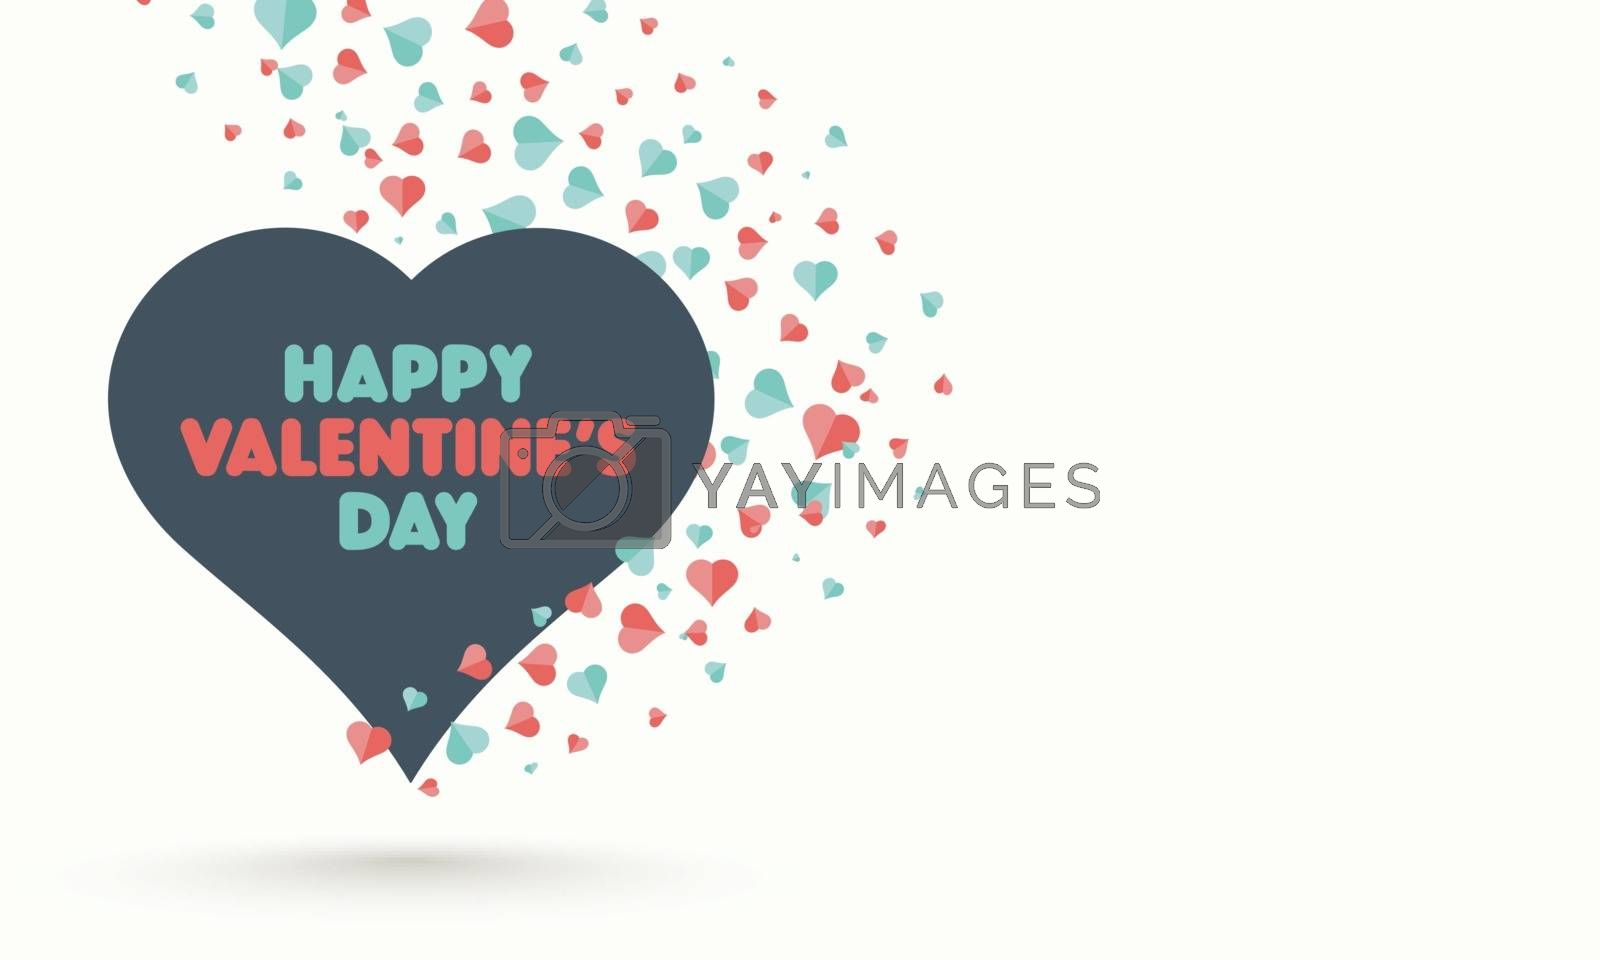 Happy valentine Day greeting card design decorated with red and green hearts on white background.